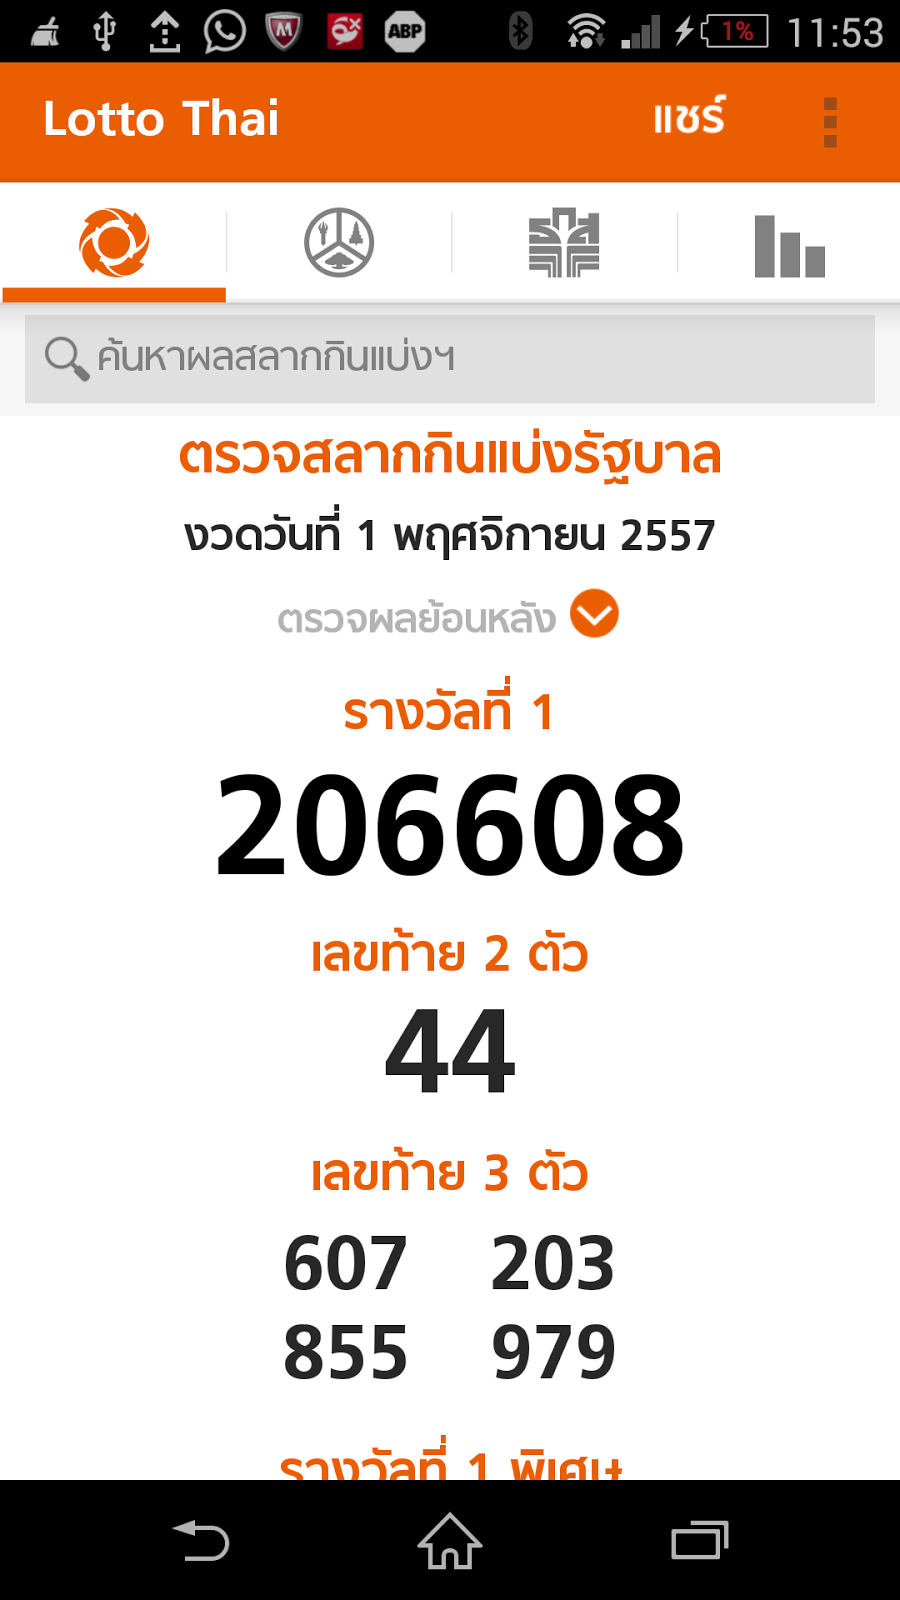 Thai lotto live result 3up and down 01 11 2014 thai lottery free